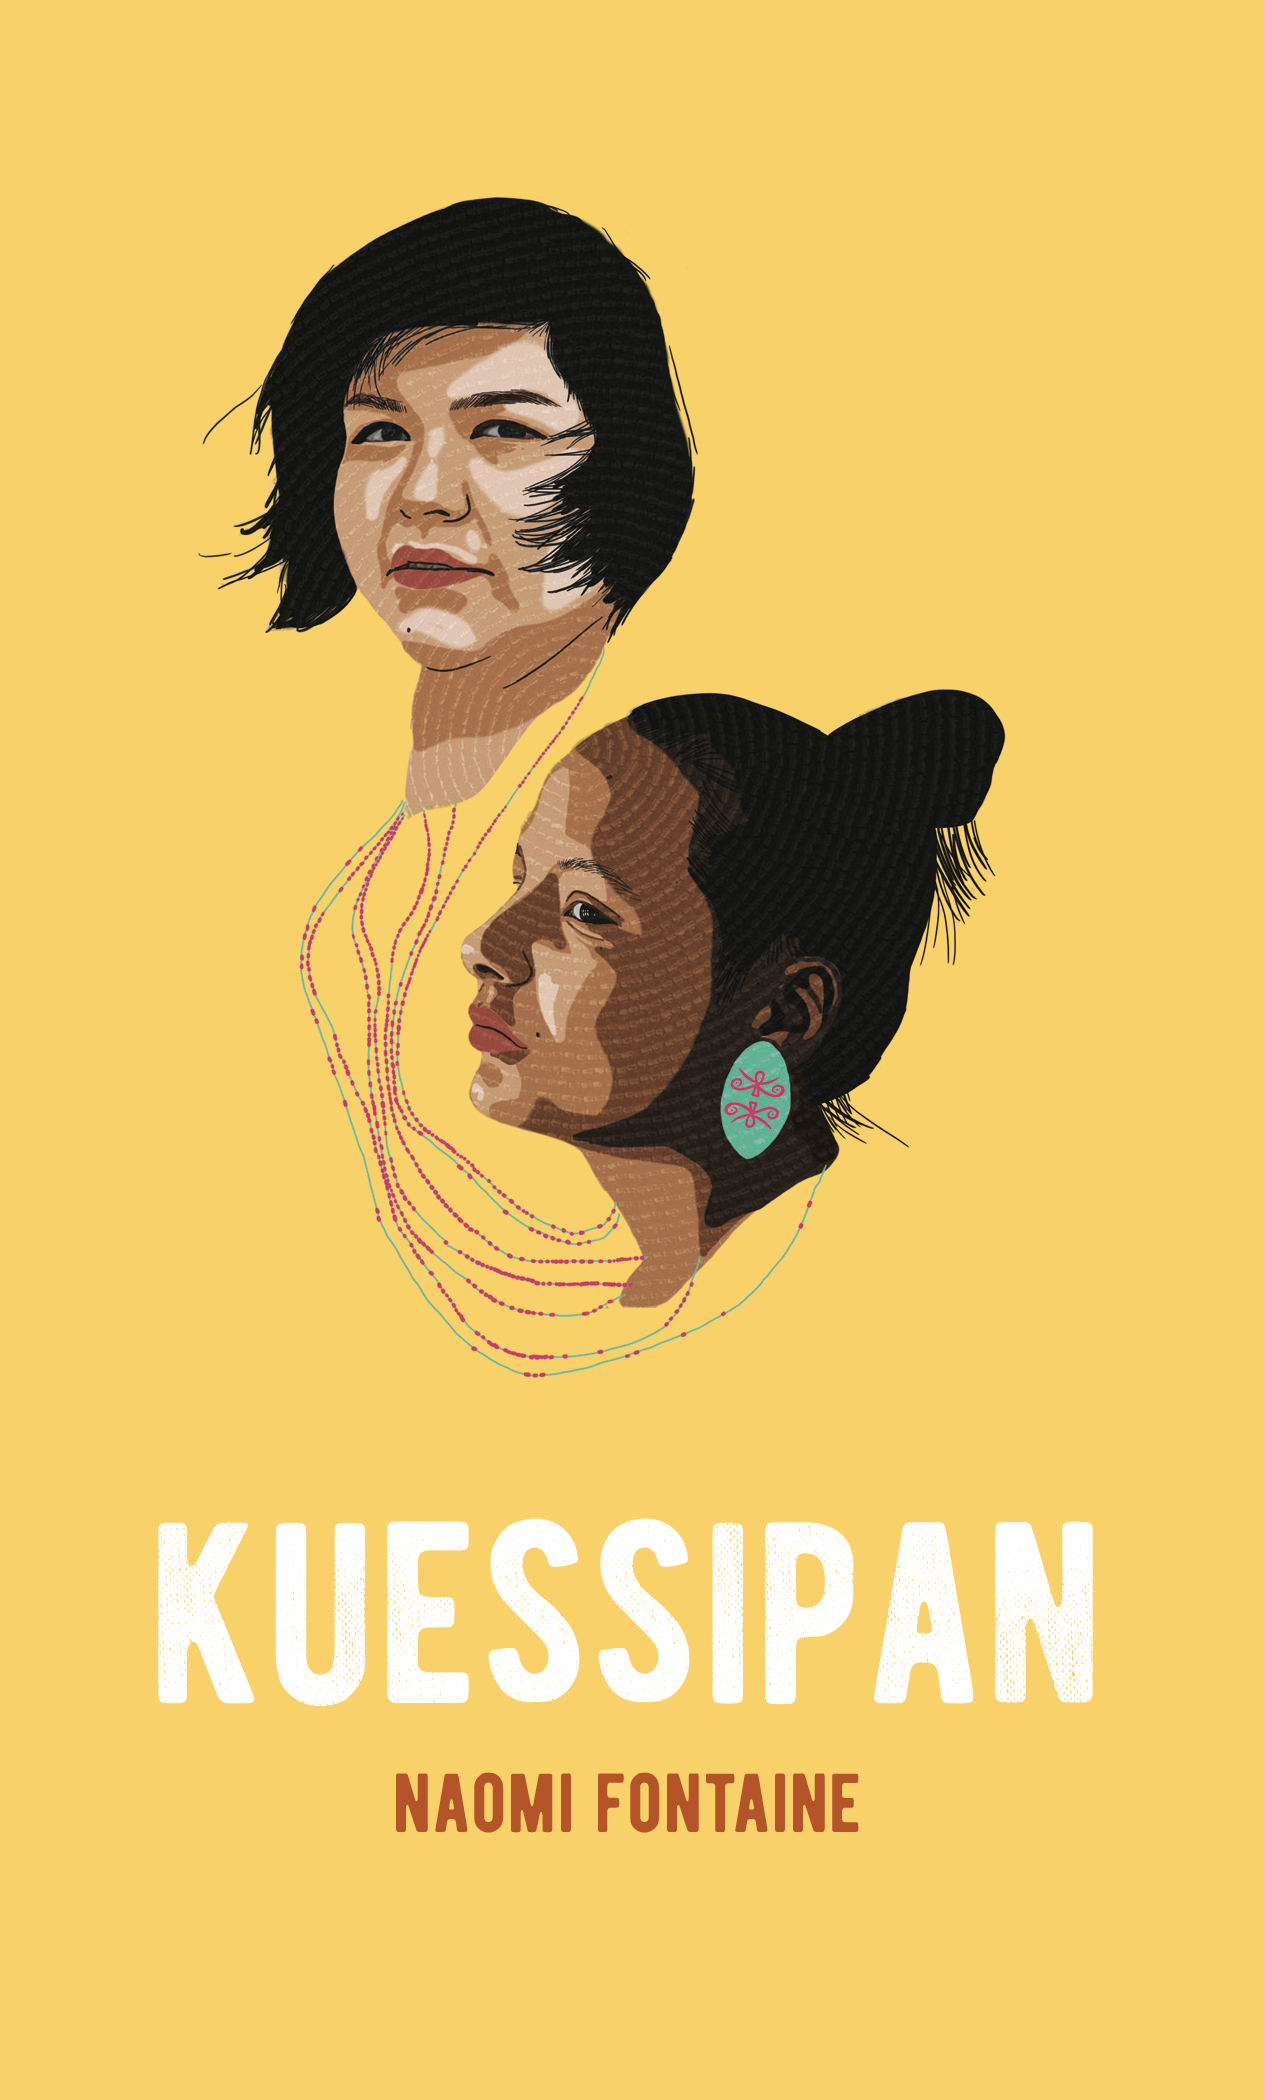 Couverture : Kuessipan Naomi Fontaine